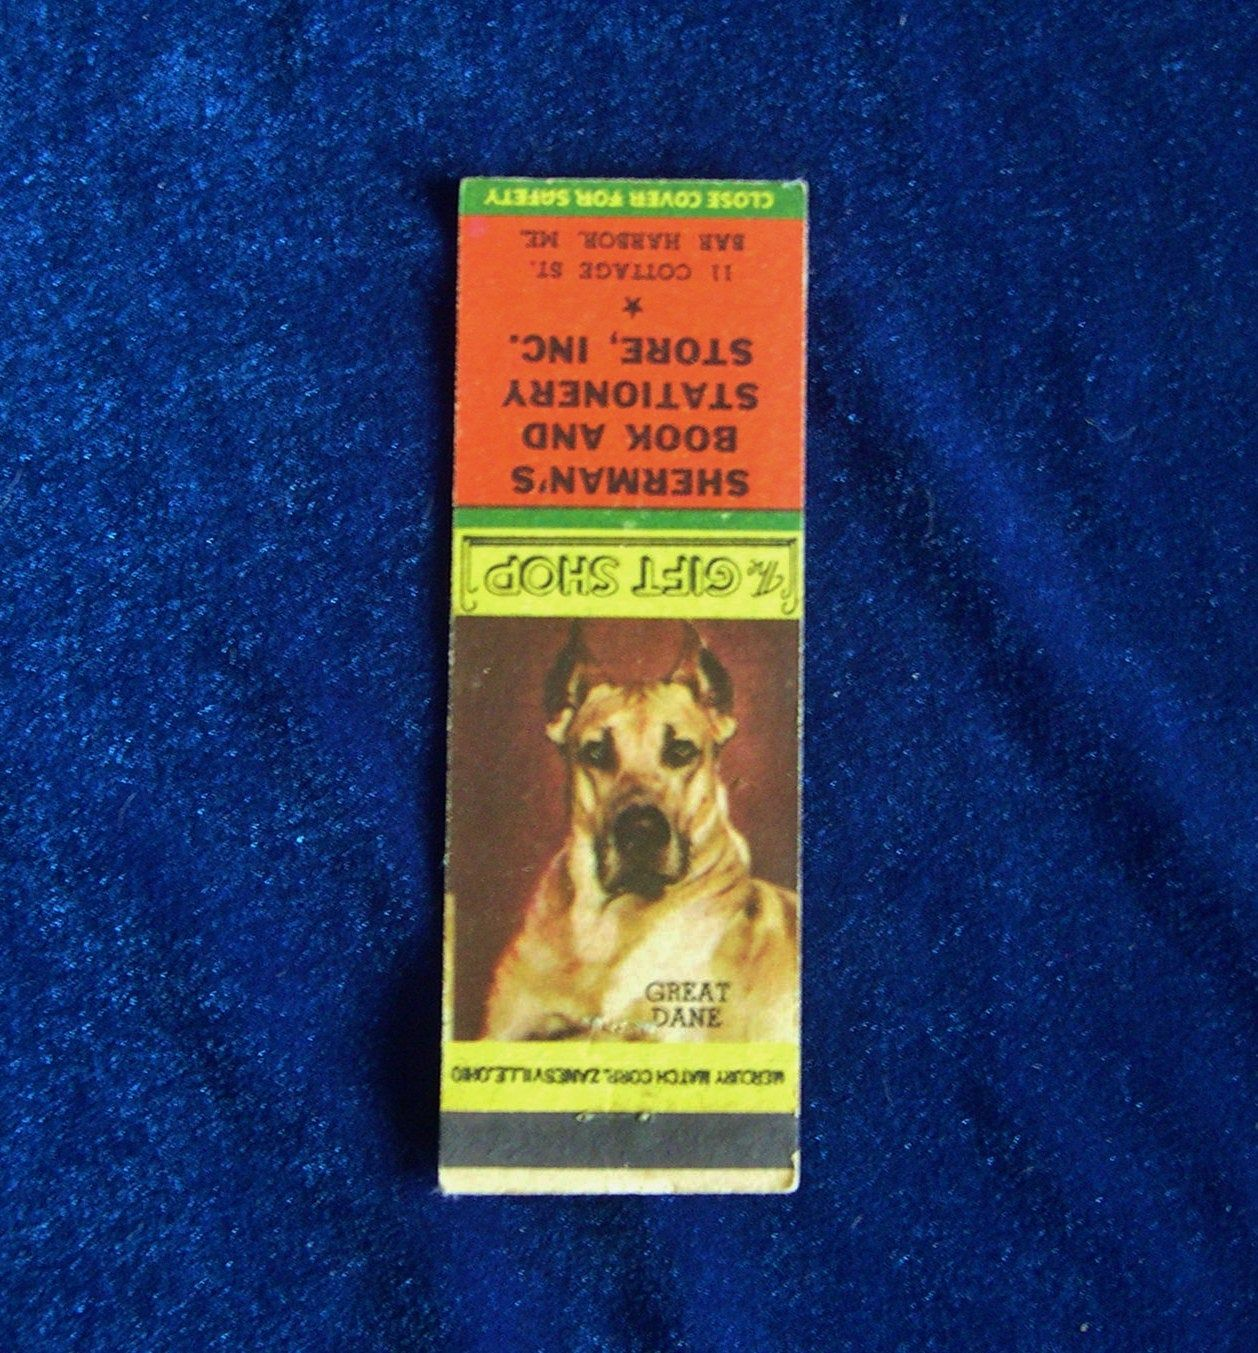 1940s great dane matchbook cover shermans book